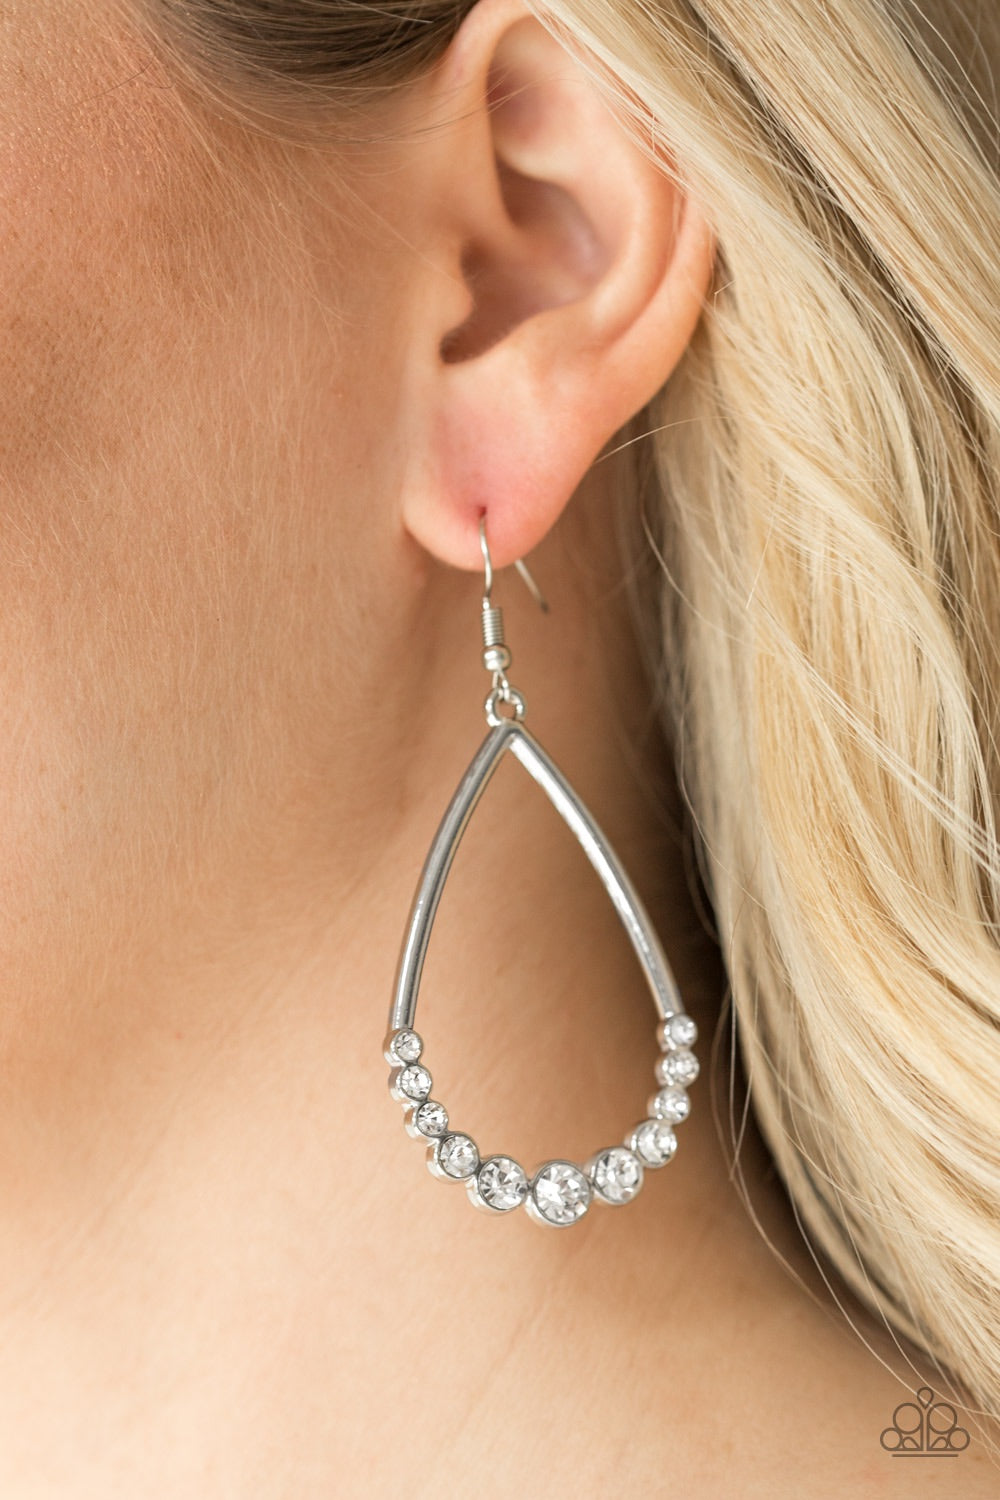 Paparazzi Jewelry Earrings Dipped In Diamonds - White